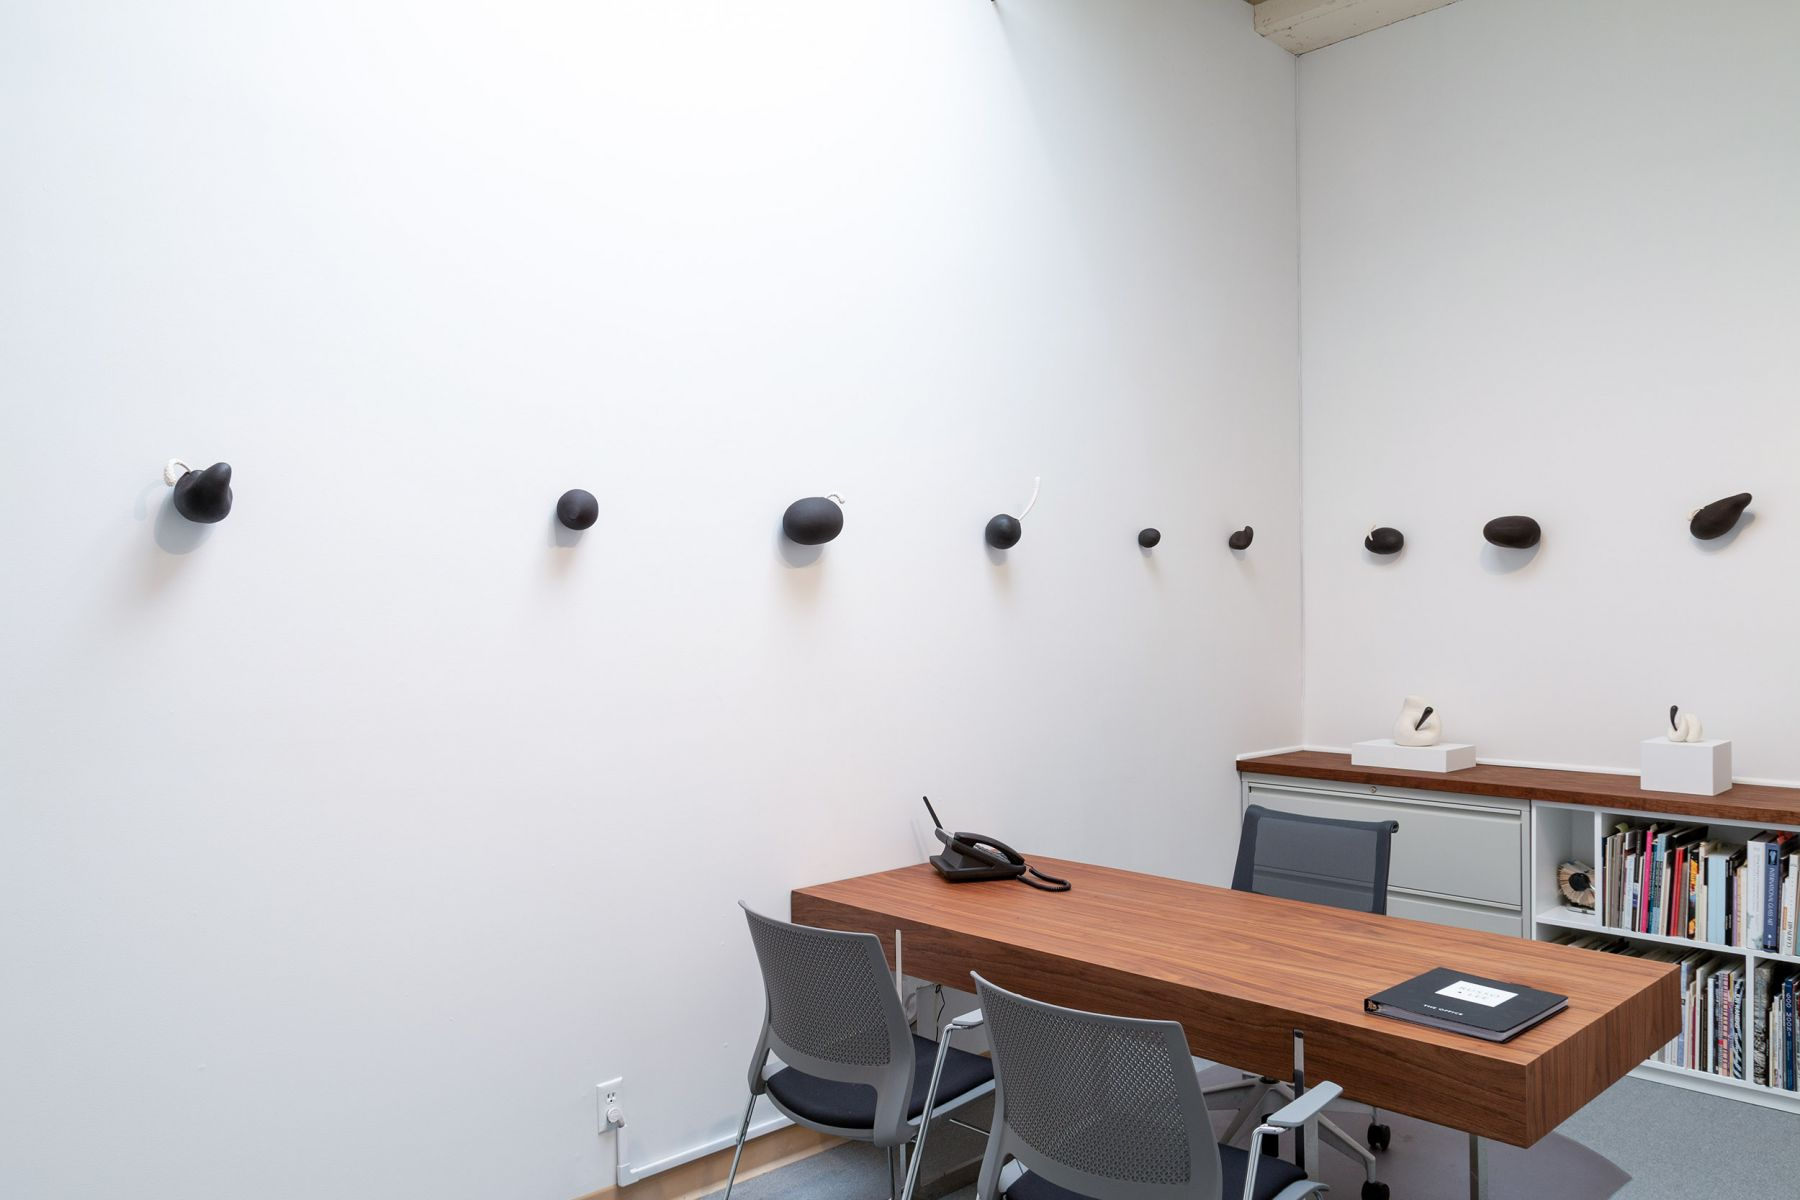 """Maya Vivas - selections from """"i have no choice but to suck the juice out, and who am i to blame"""" - July/August 2019 - Russo Lee Gallery - Installation view 02"""